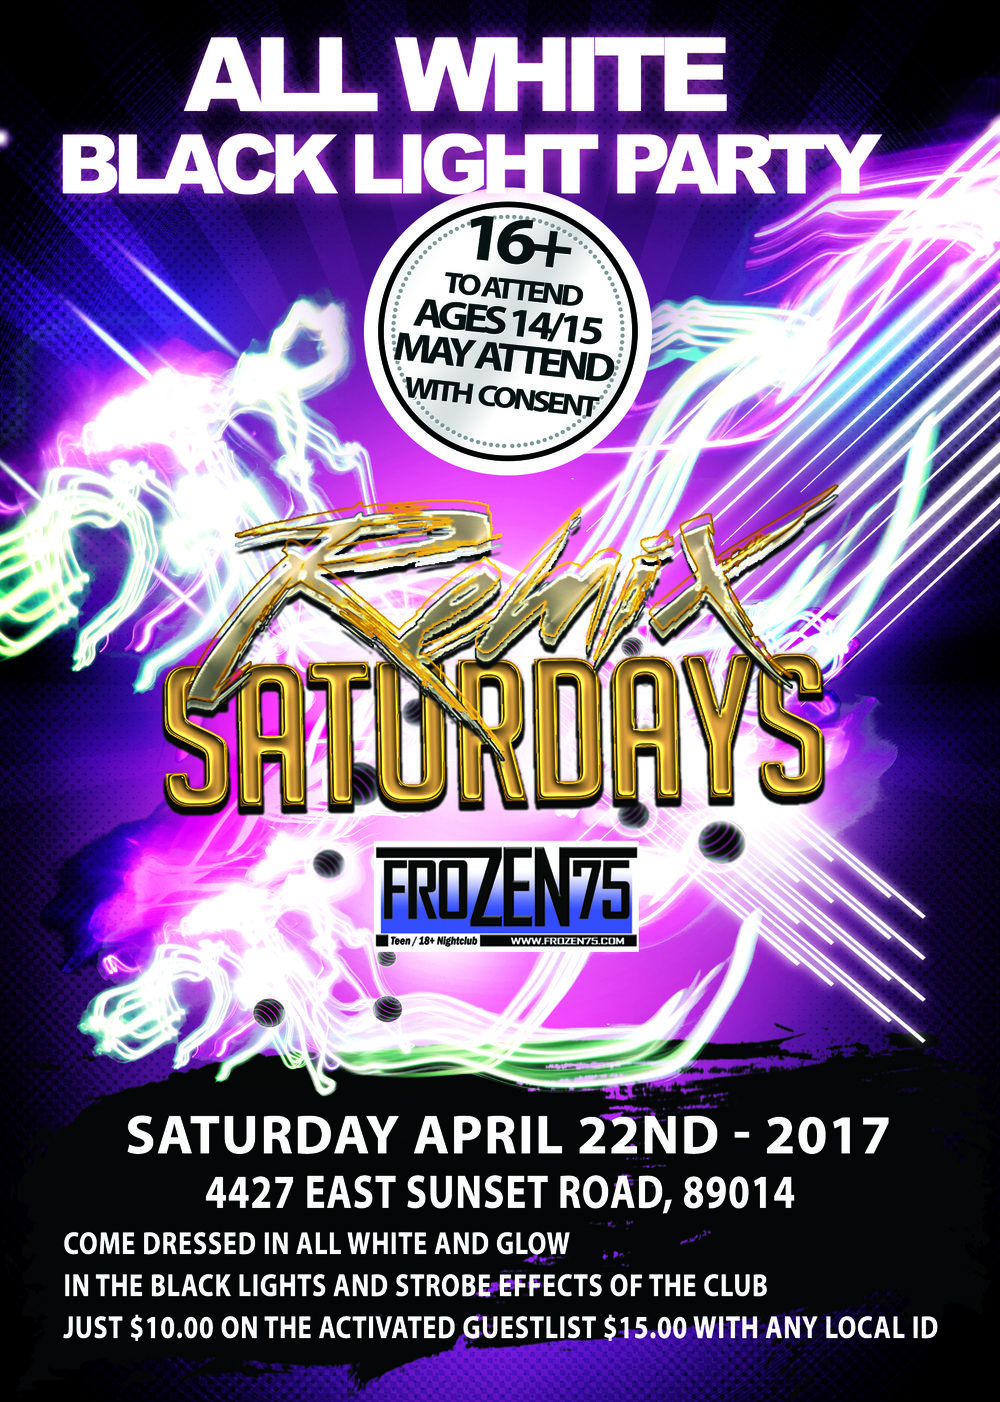 FroZEN75_REMIX SATURDAYS_All White, Black Light Partyt hosted by Yami_4-22-2017_FRONT.jpg